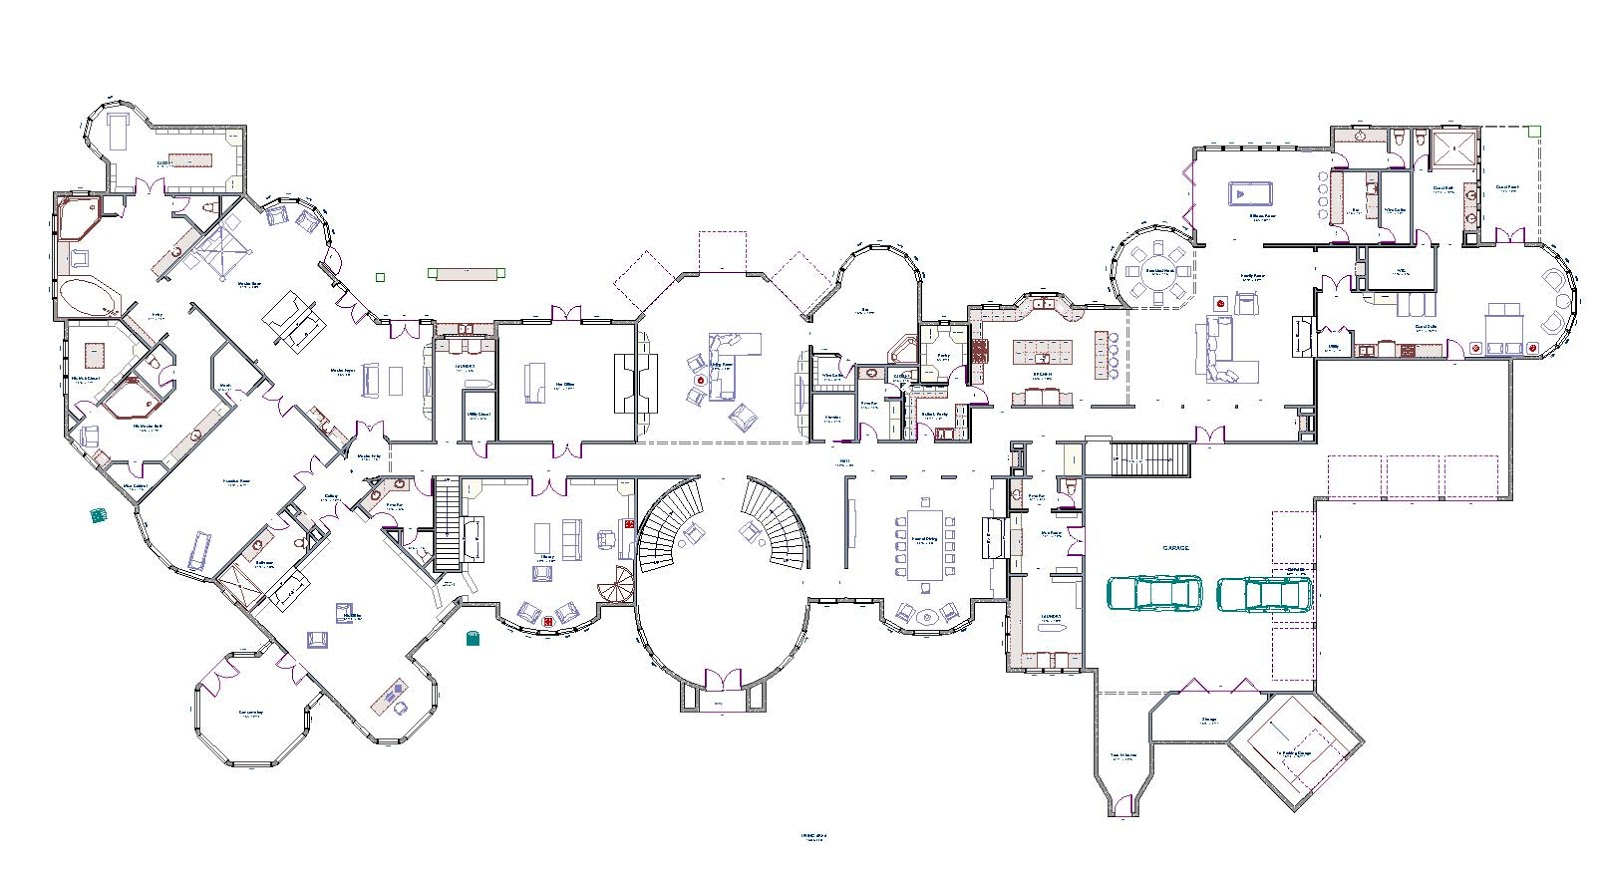 mansions amp more partial floor plans i have designed part 2 mansion floor plans modern house